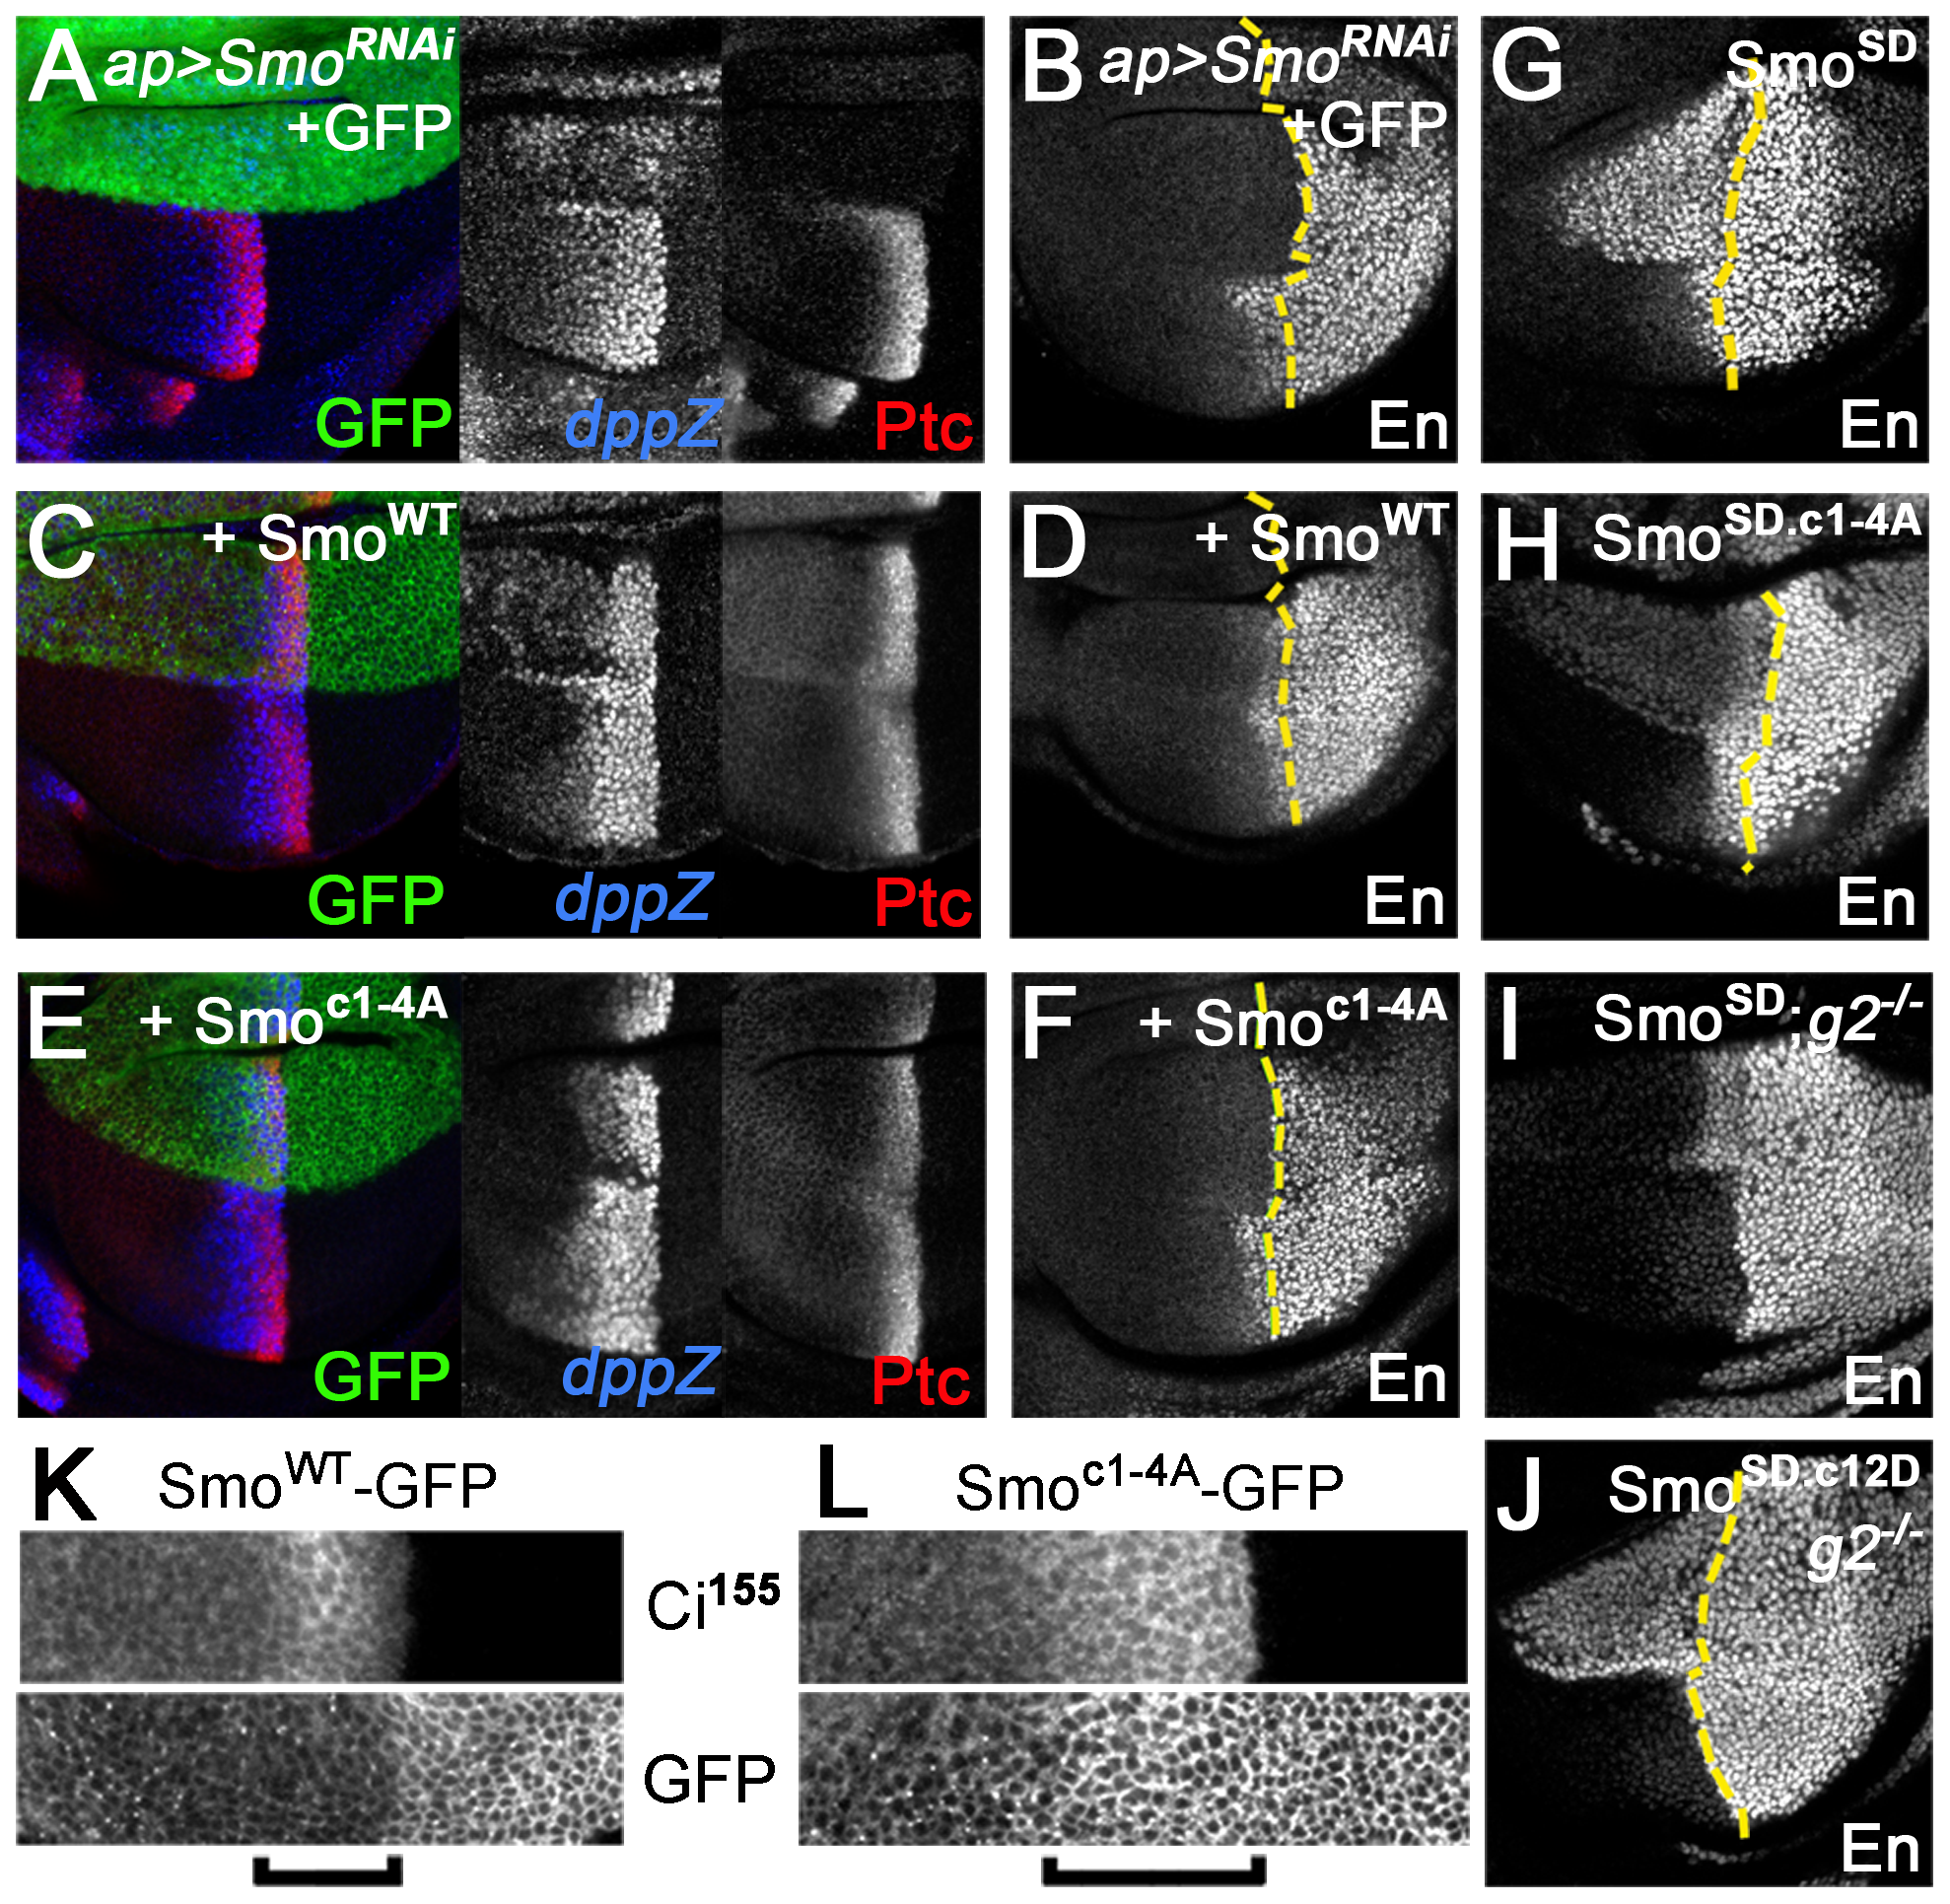 Gprk2 phosphorylation is required for maximal Smo activity <i>in vivo</i>.